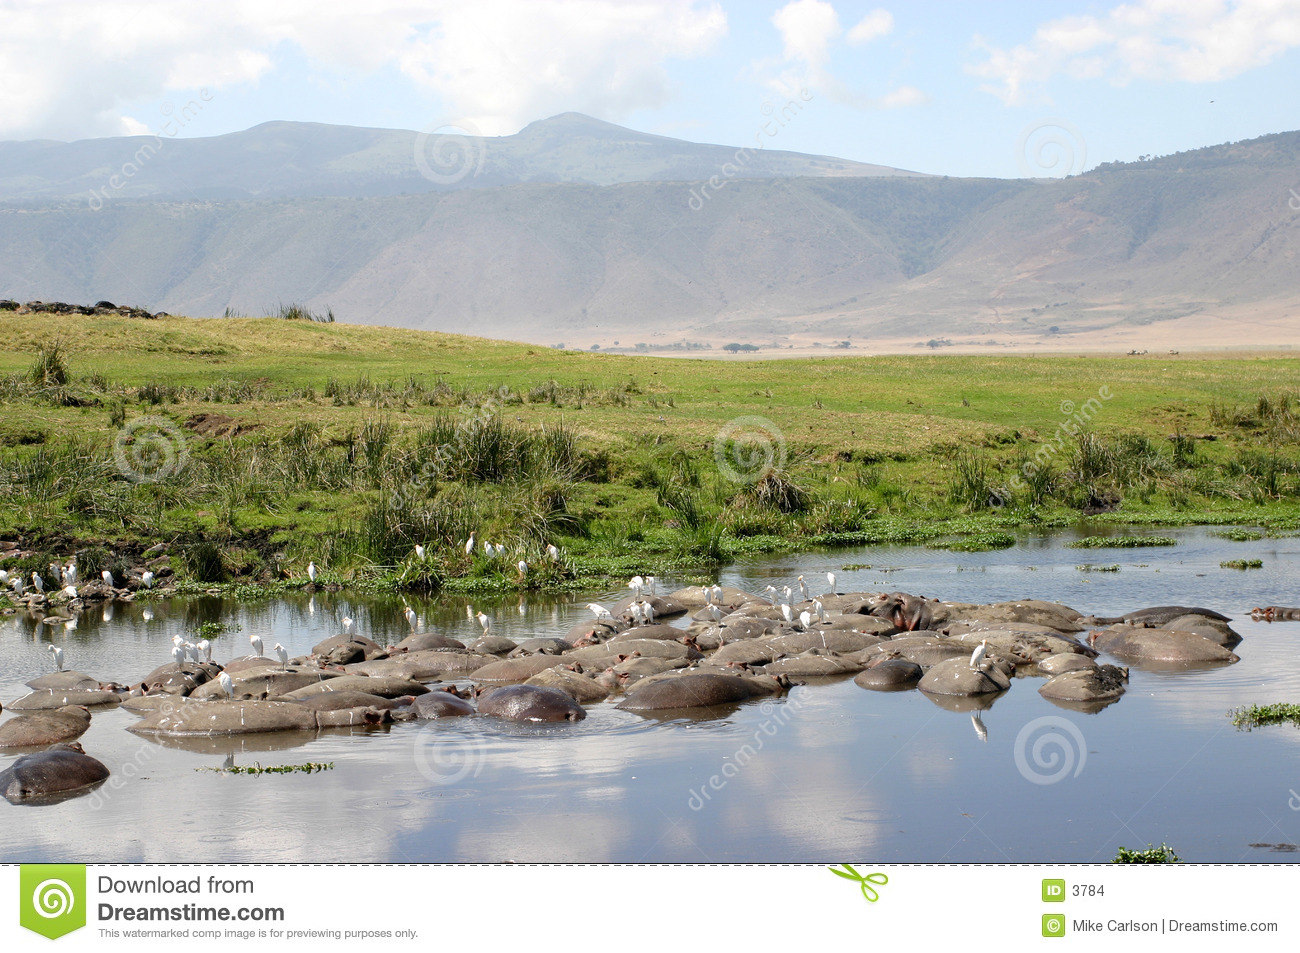 Crater Landscape with Hippos